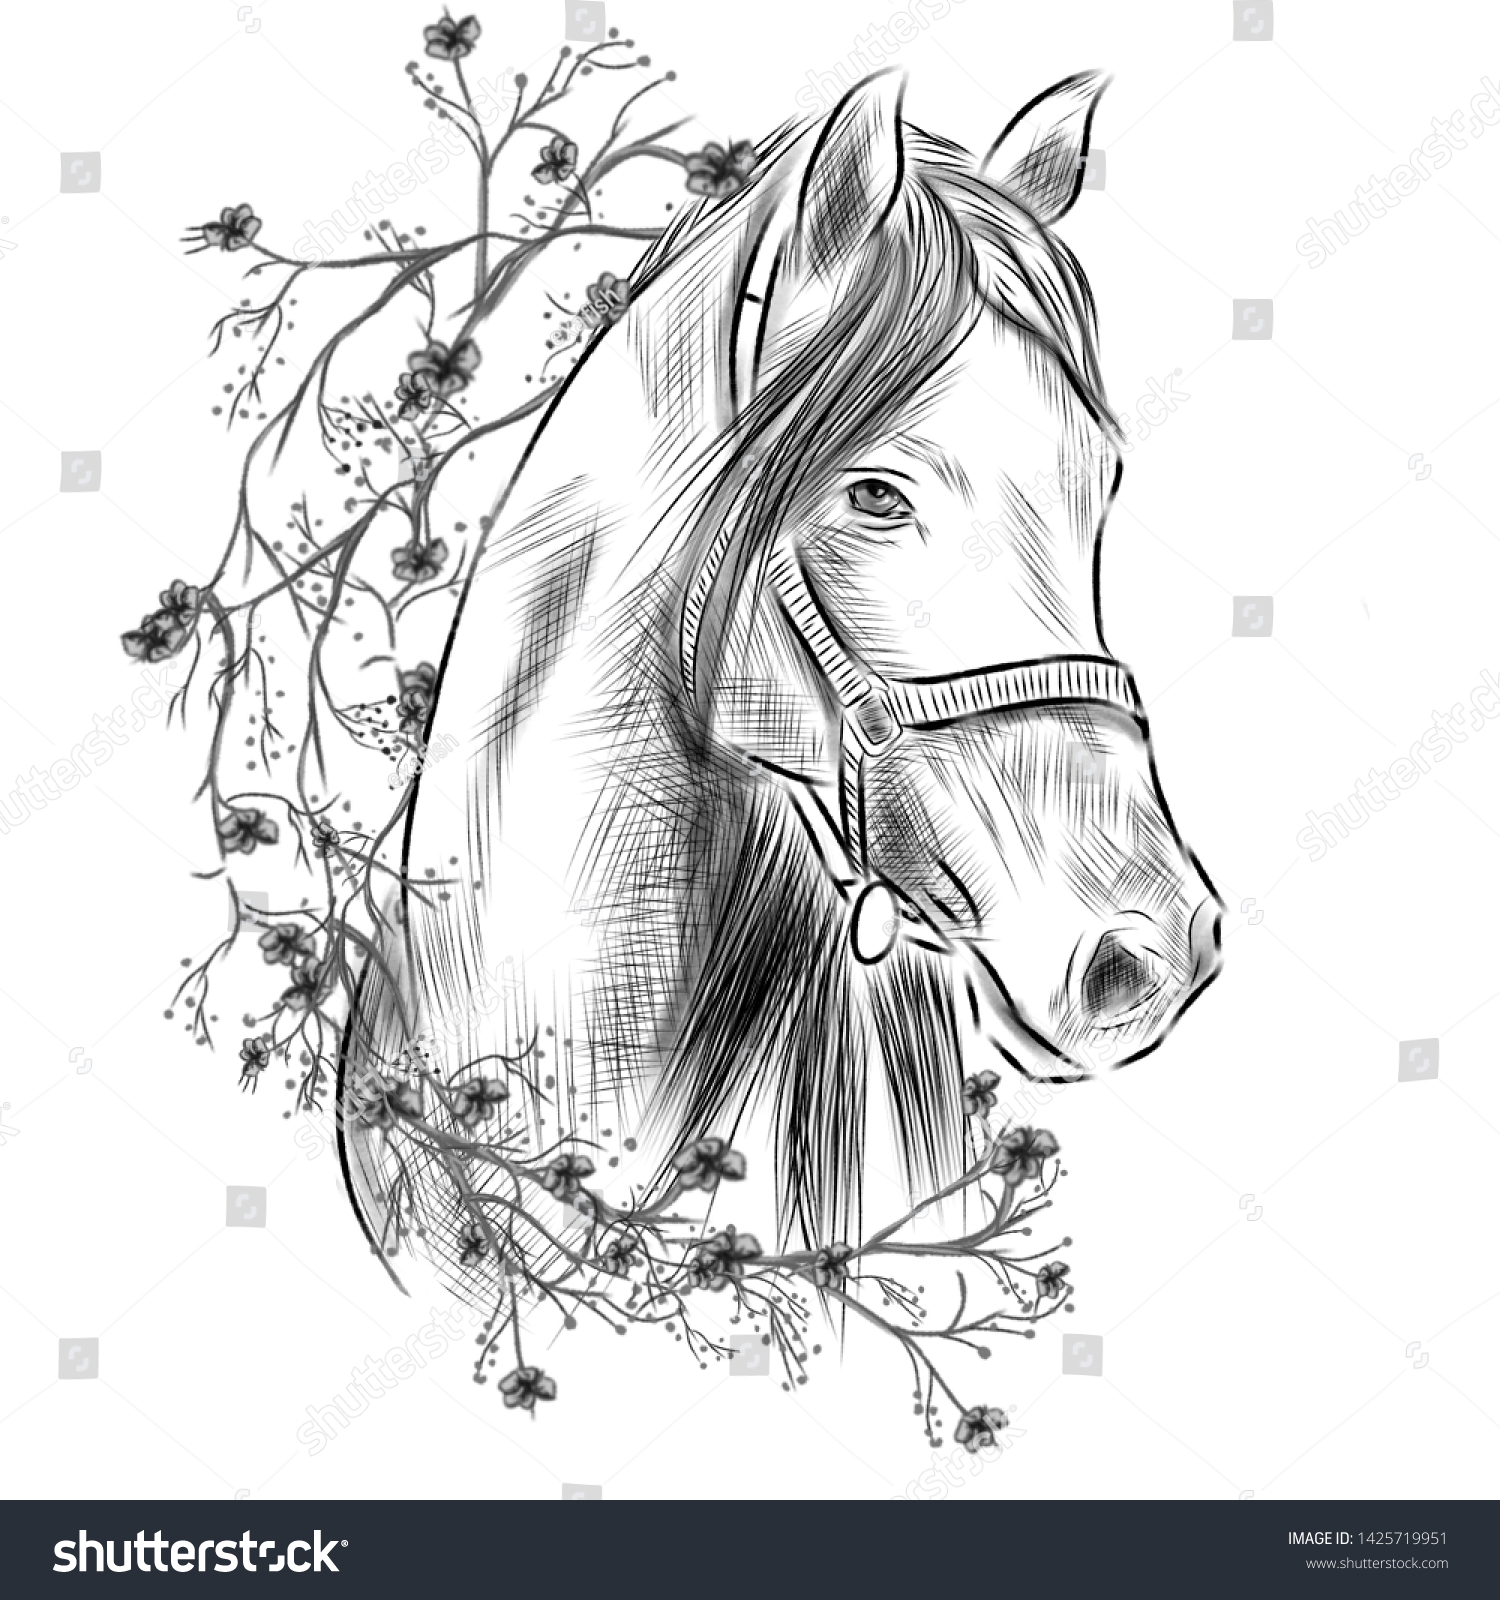 Black White Pencil Sketch Horse Flowers Stock Illustration 1425719951